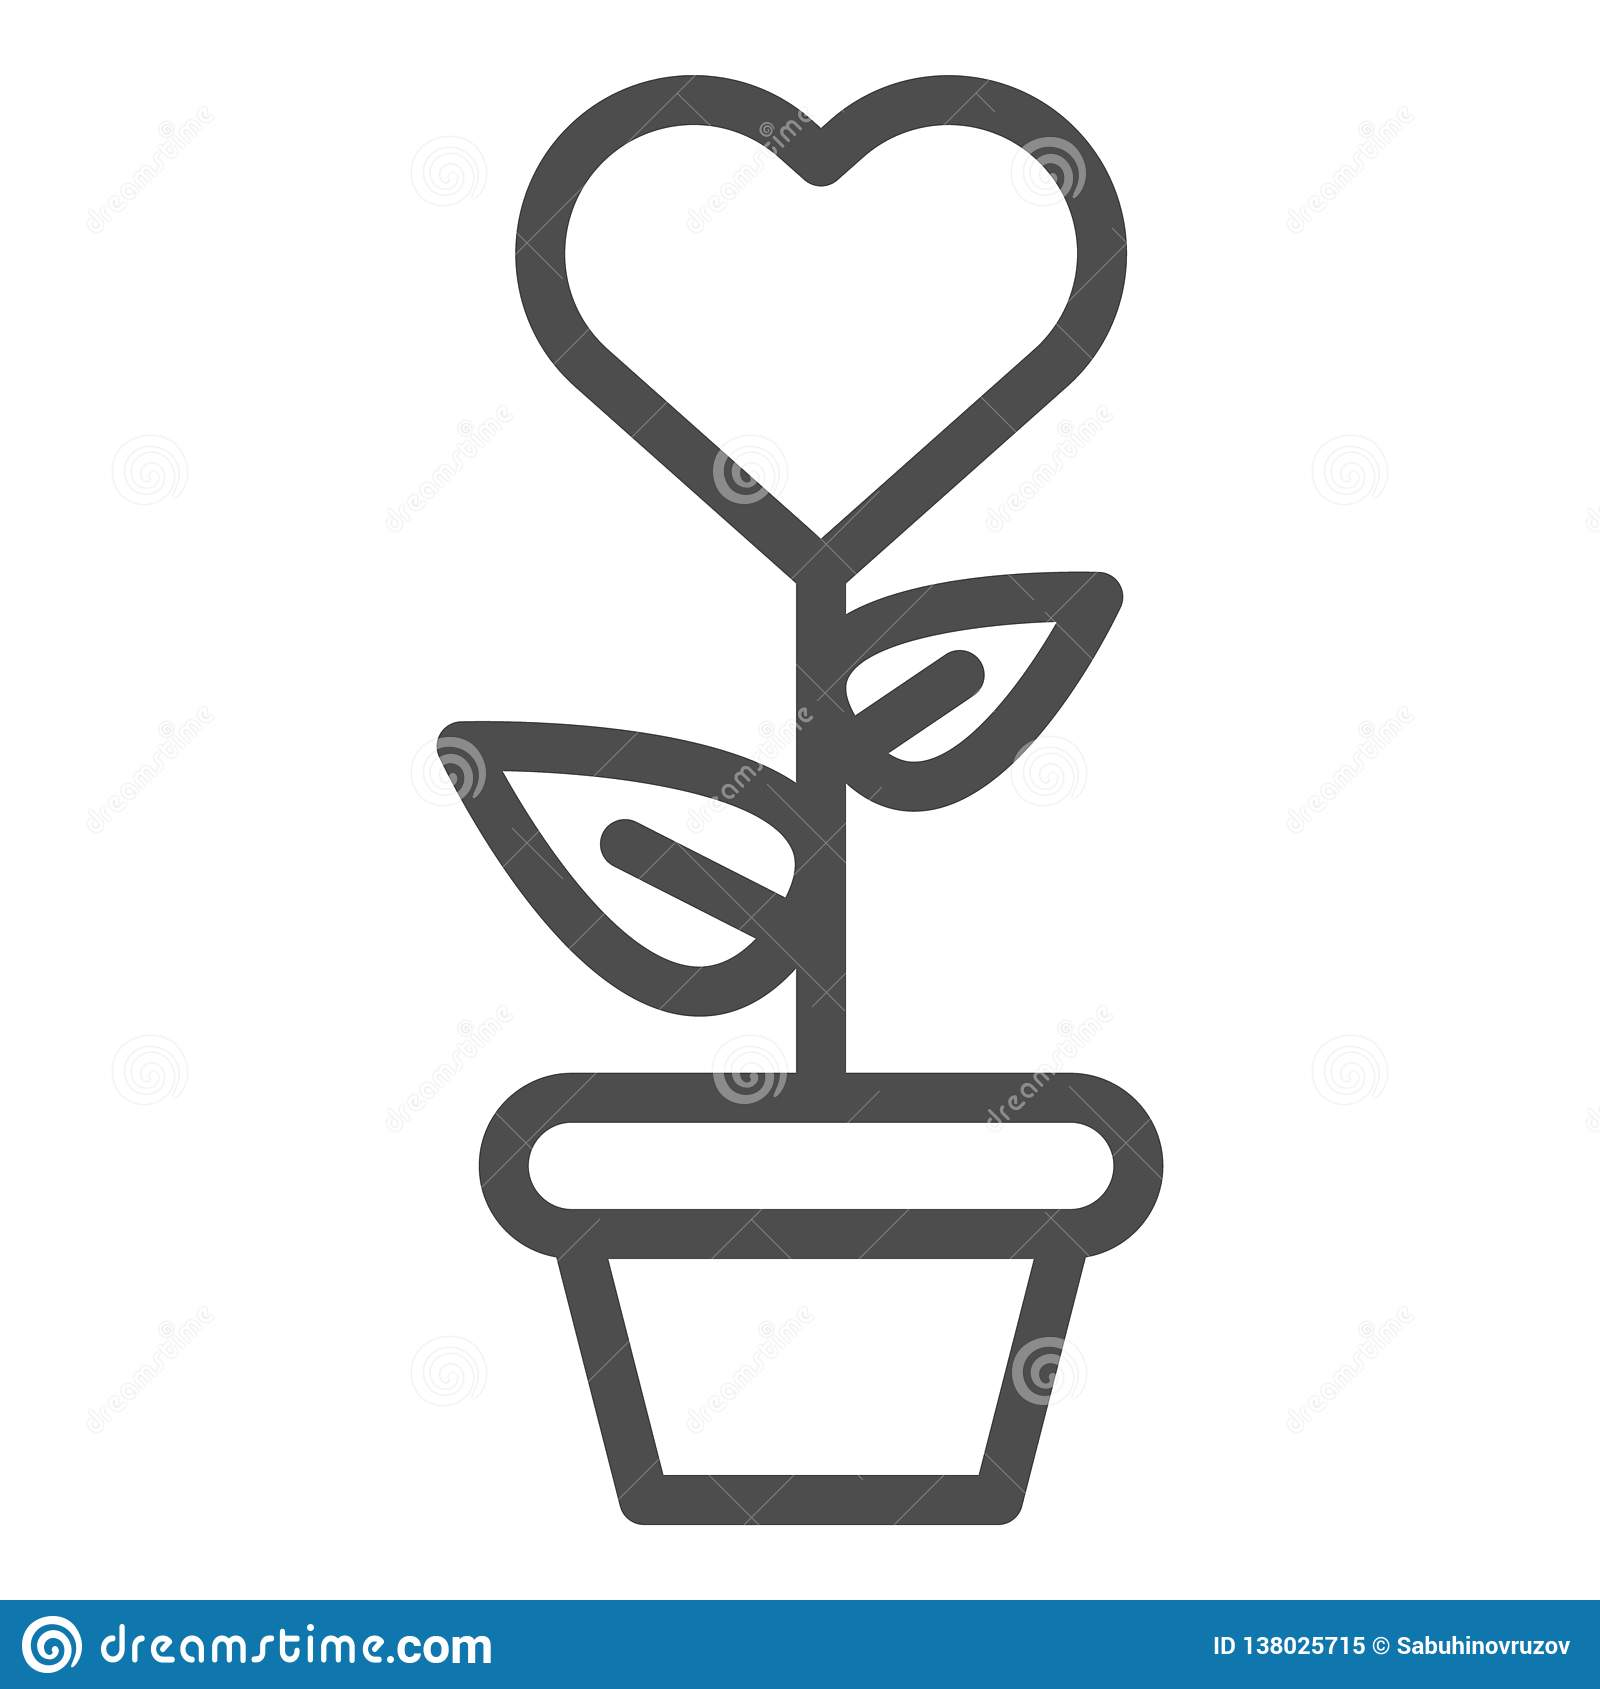 Heart in flowerpot line icon. Heart shaped flower in pot vector illustration isolated on white. Love floral outline